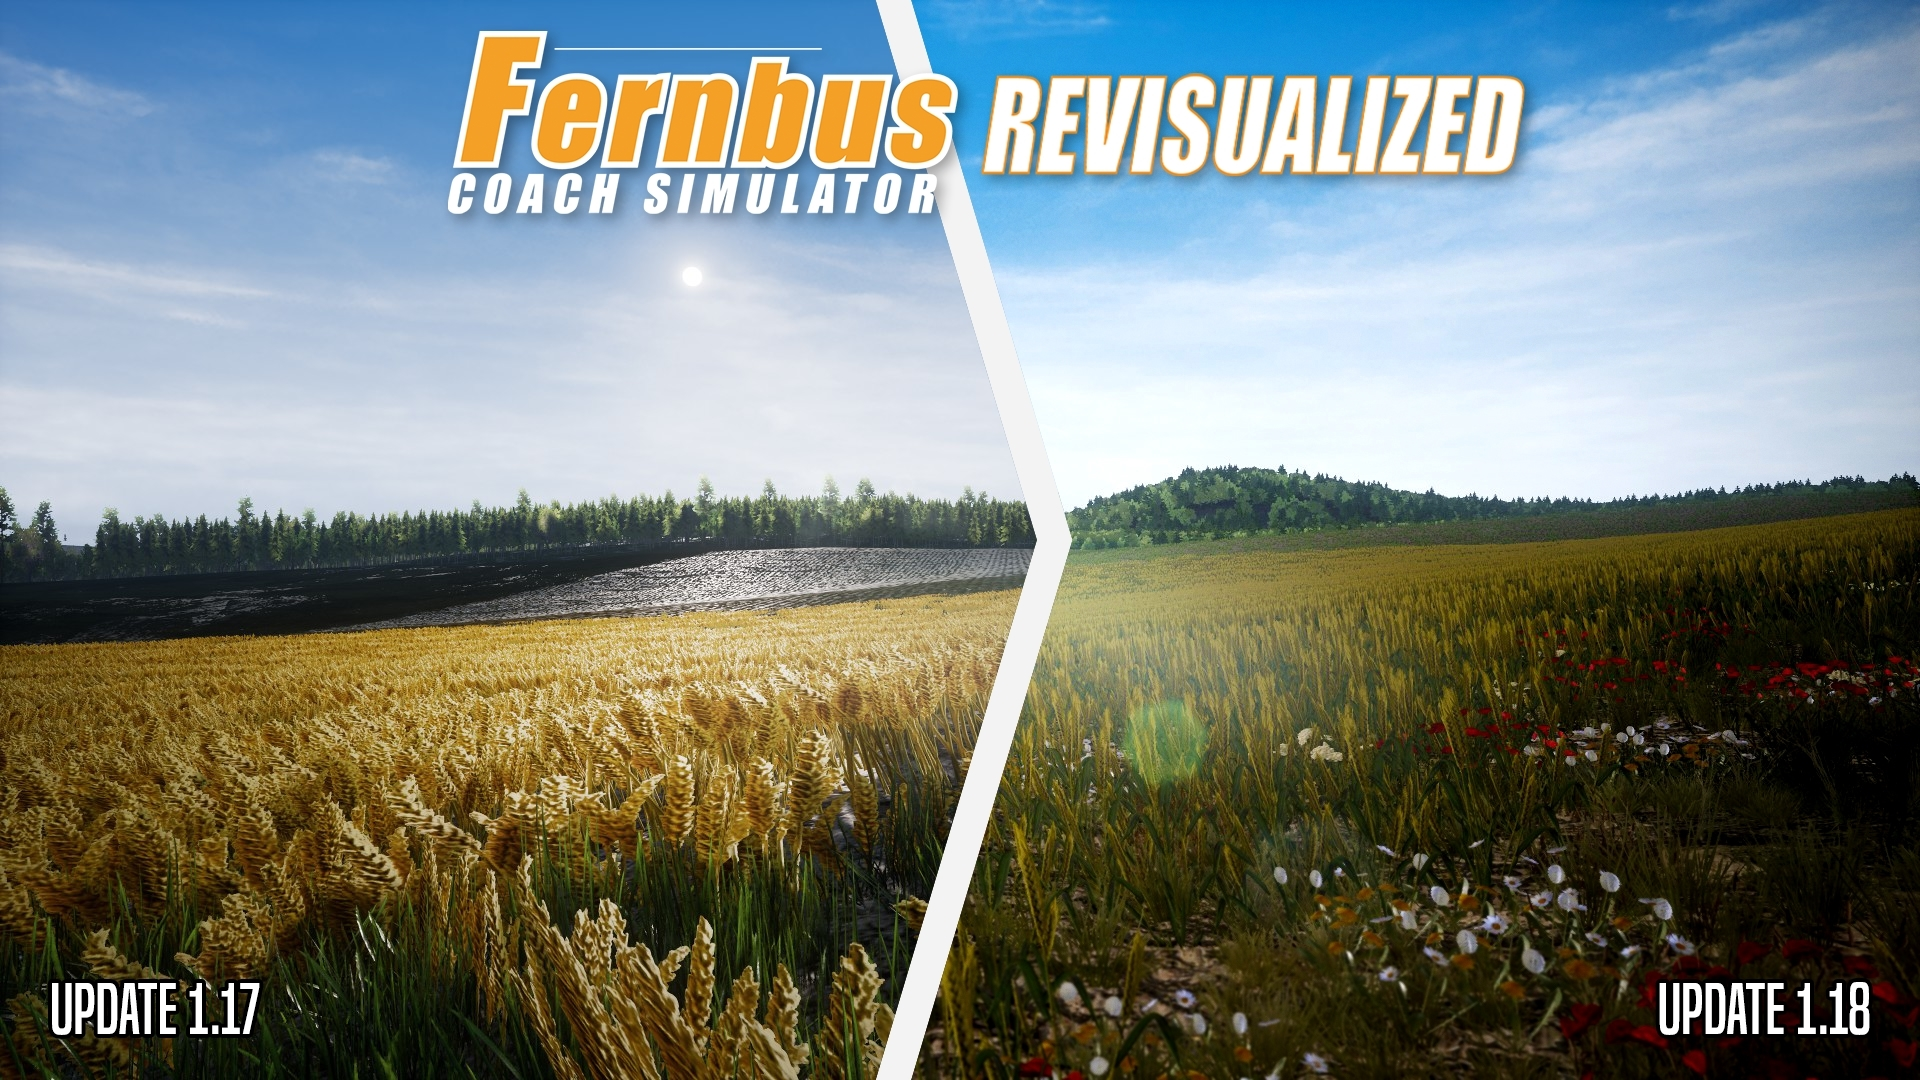 Fernbus Coach Simulator Revisualized - Update 1.18